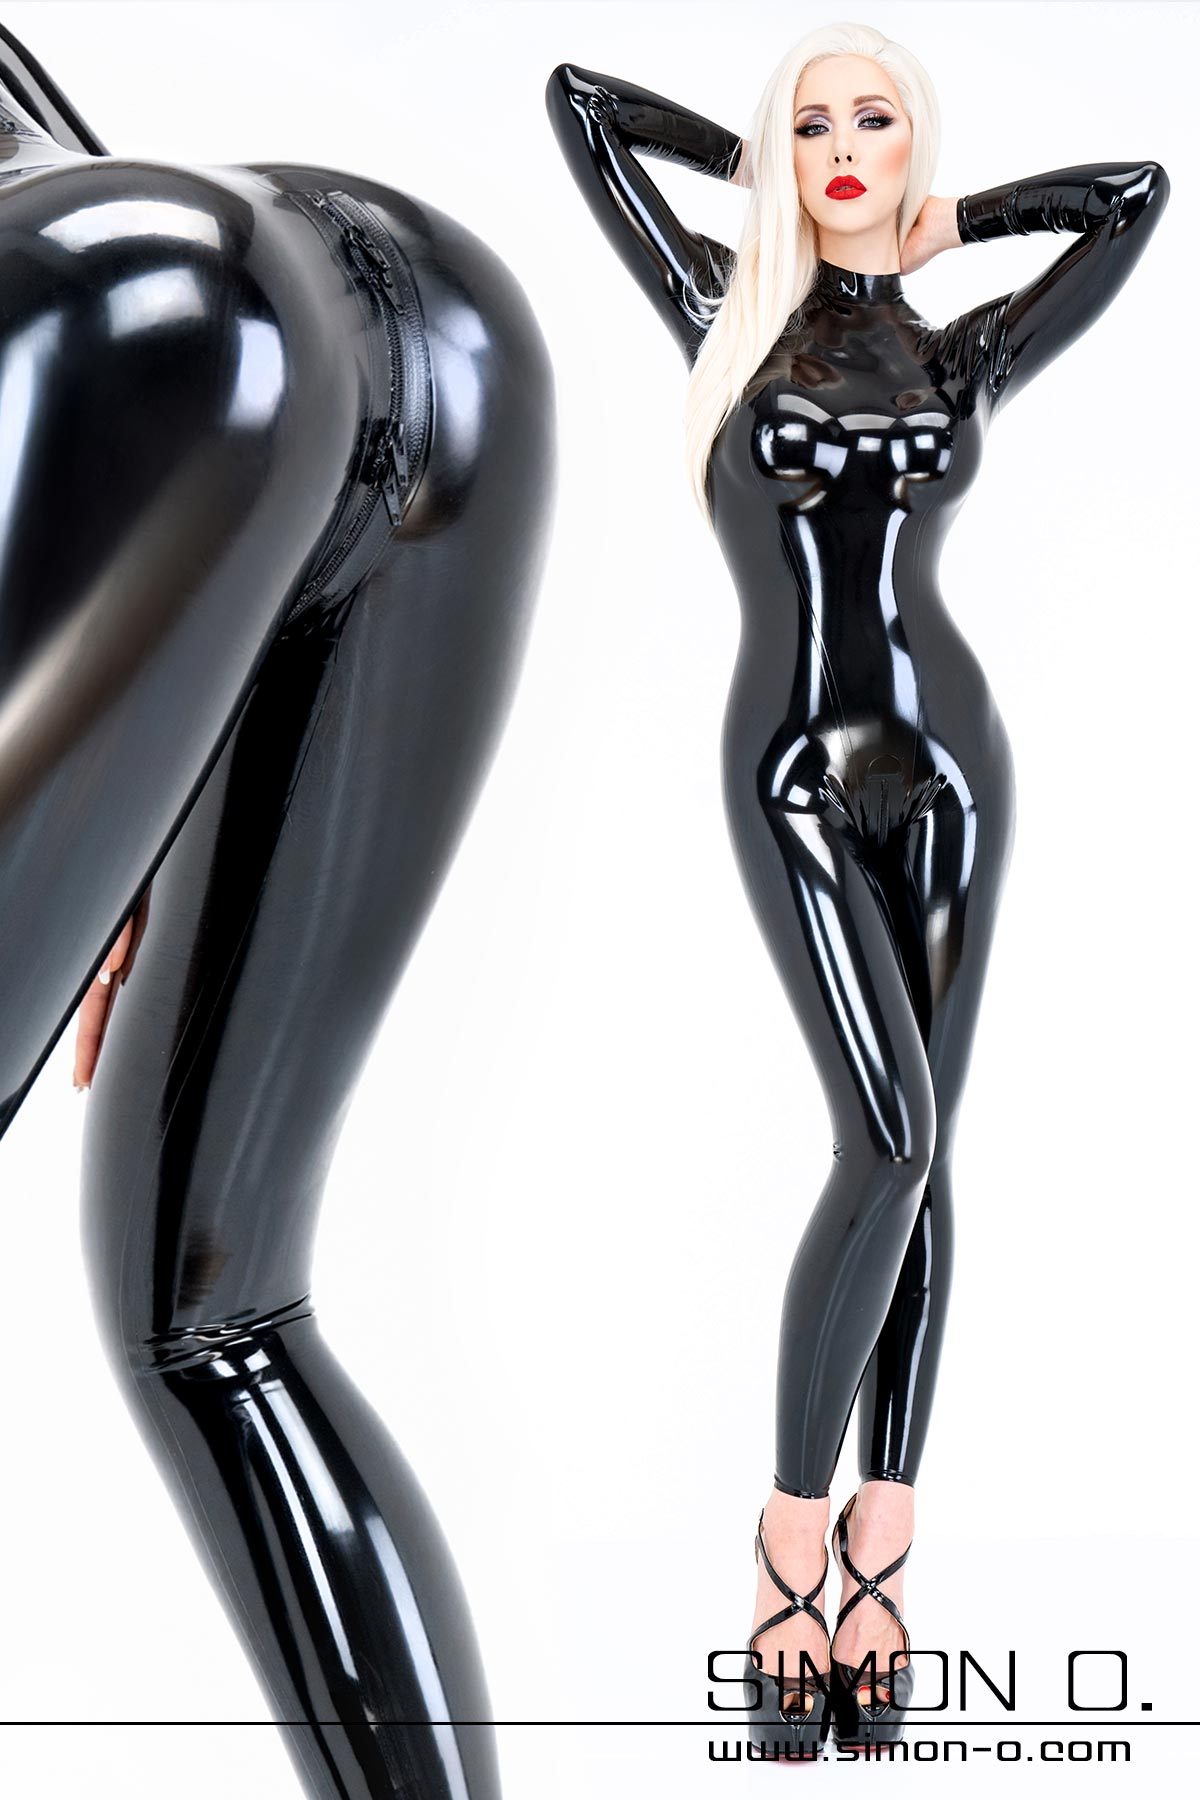 A woman wears a shiny skintight black latex catsuit with skintight fit